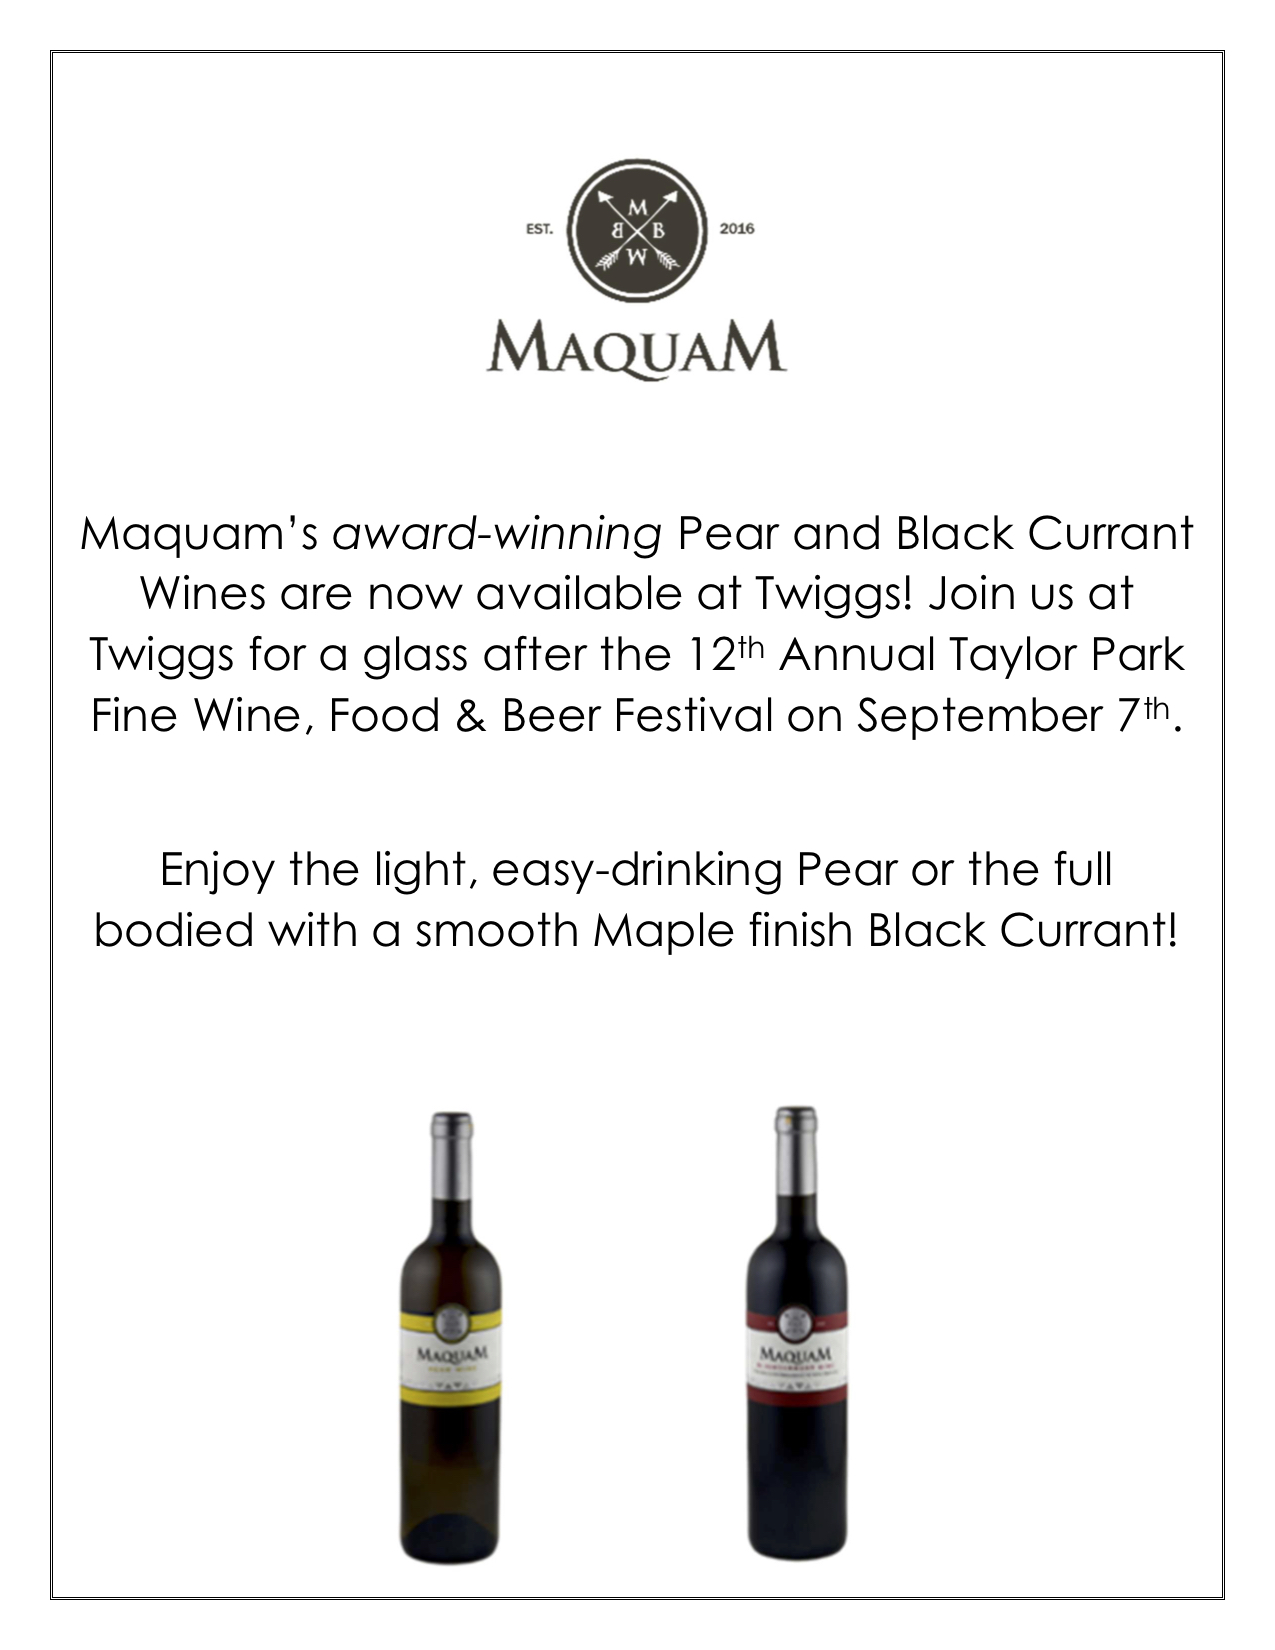 Maquam pear and black currant wines now available at twiggs.